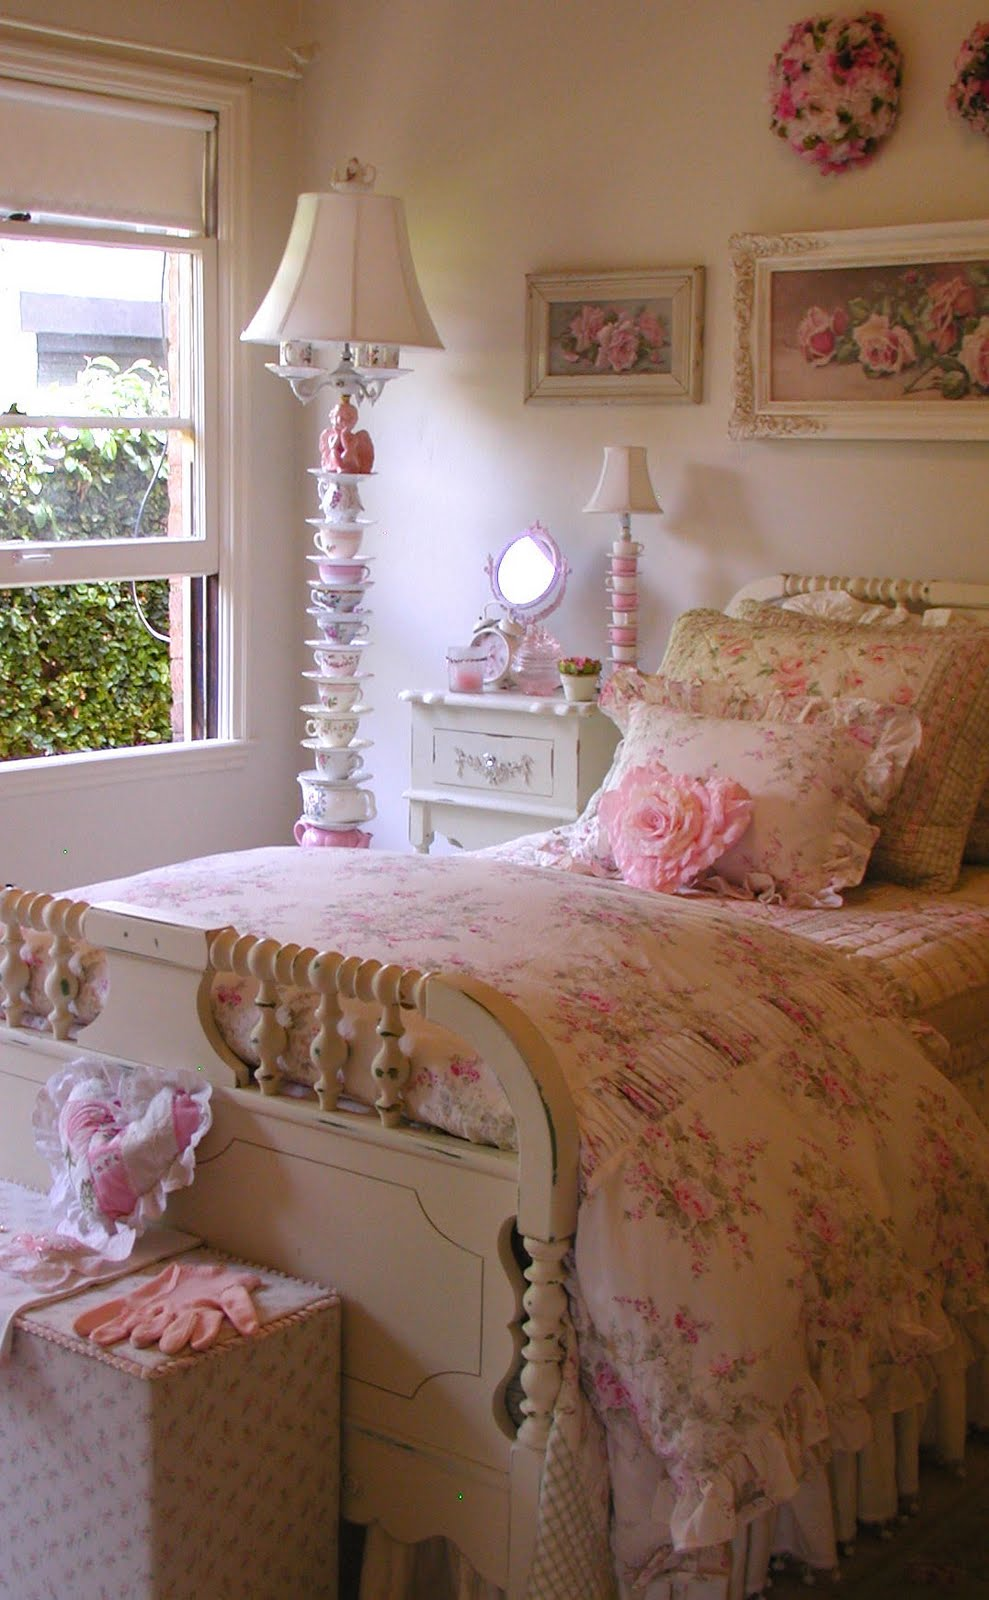 Chateau de fleurs english cottage romance for English cottage bedroom